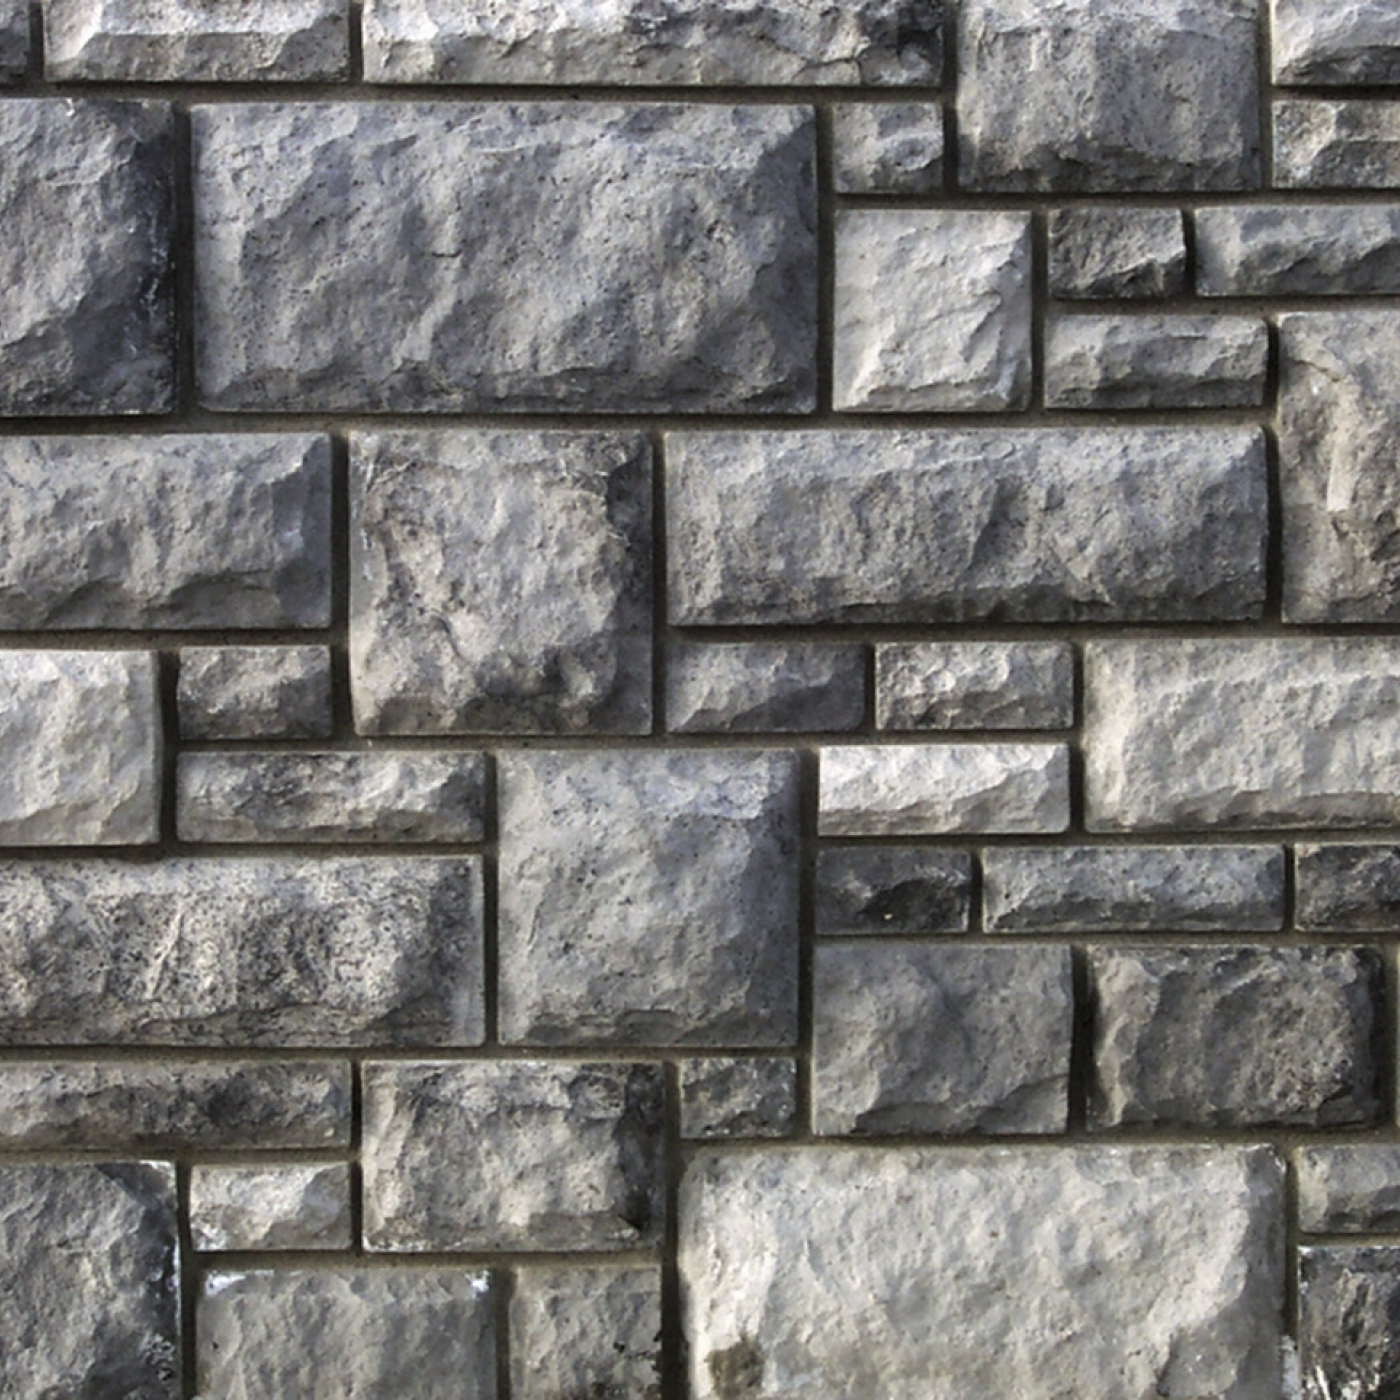 Slate Castle Rock Cut Stone Stone Veneer from Environmental StoneWorks